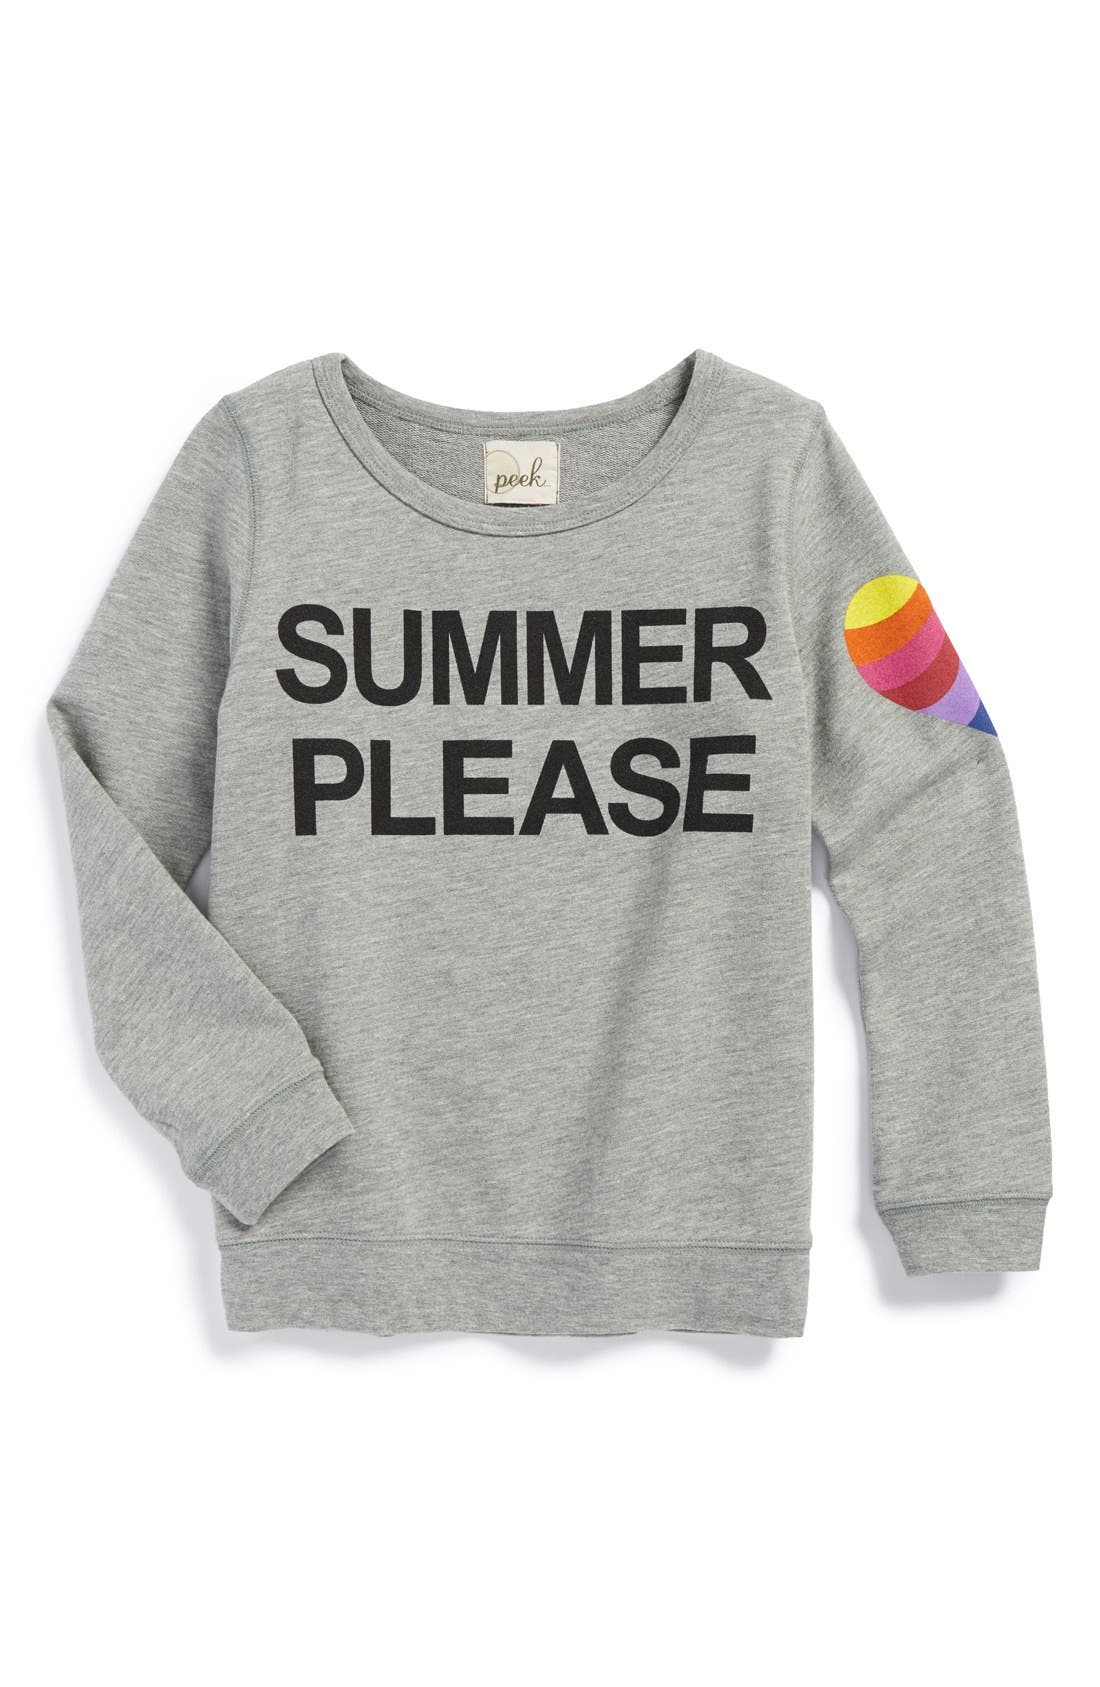 Main Image - Peek 'Summer Please' Graphic Sweatshirt (Toddler Girls, Little Girls & Big Girls)